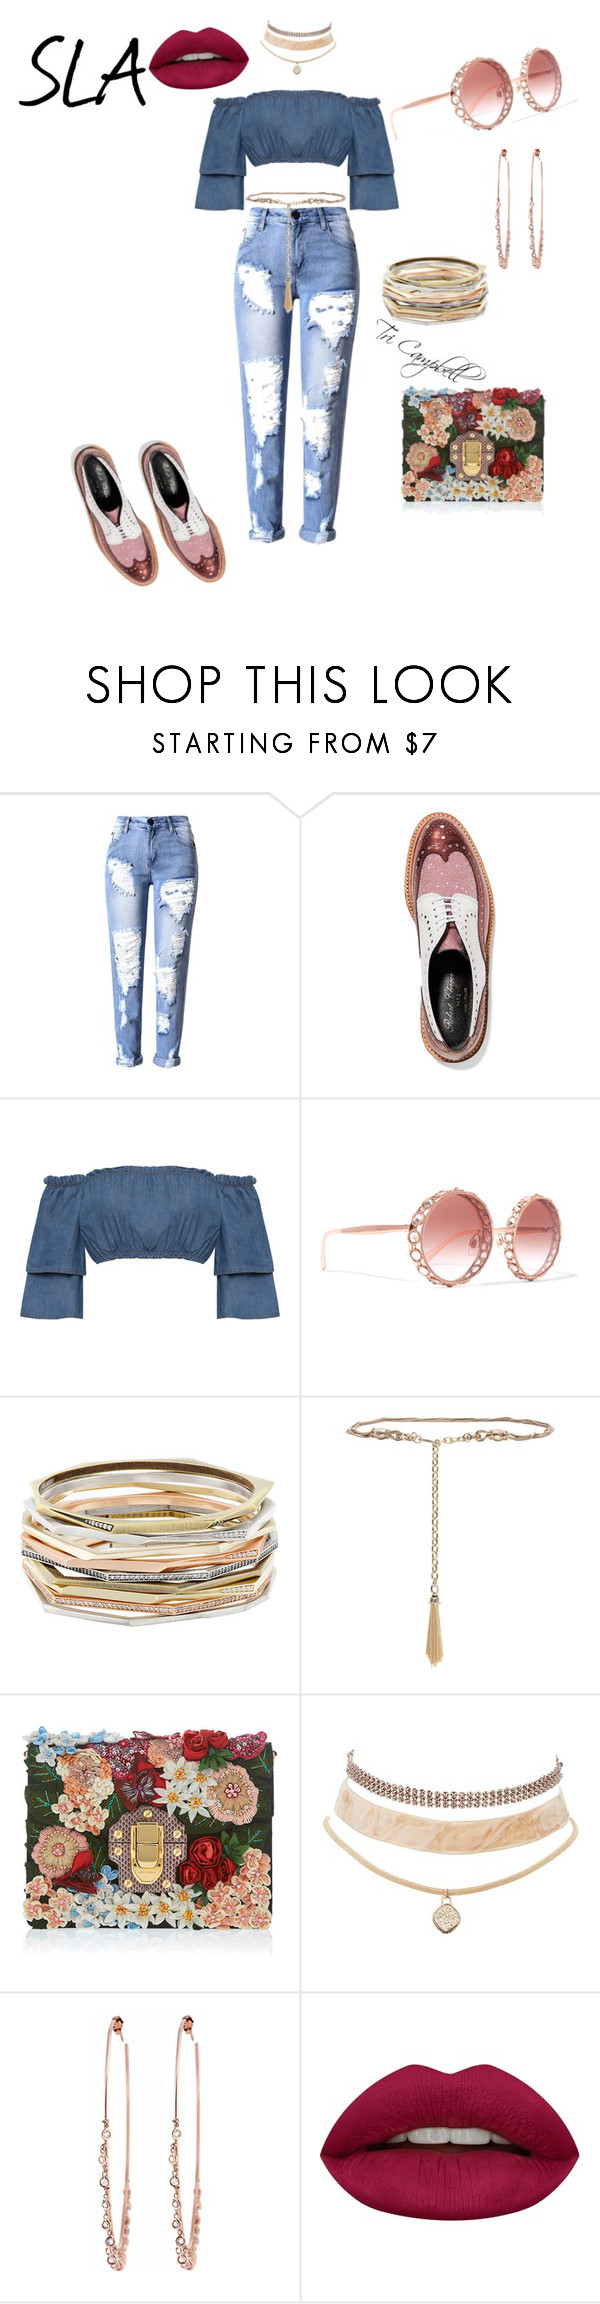 """Rosey"" by tritheslaqueen on Polyvore featuring Robert Clergerie, WearAll, Dolce&Gabbana, Kendra Scott, St. John, Charlotte Russe, Jacquie Aiche and Huda Beauty"